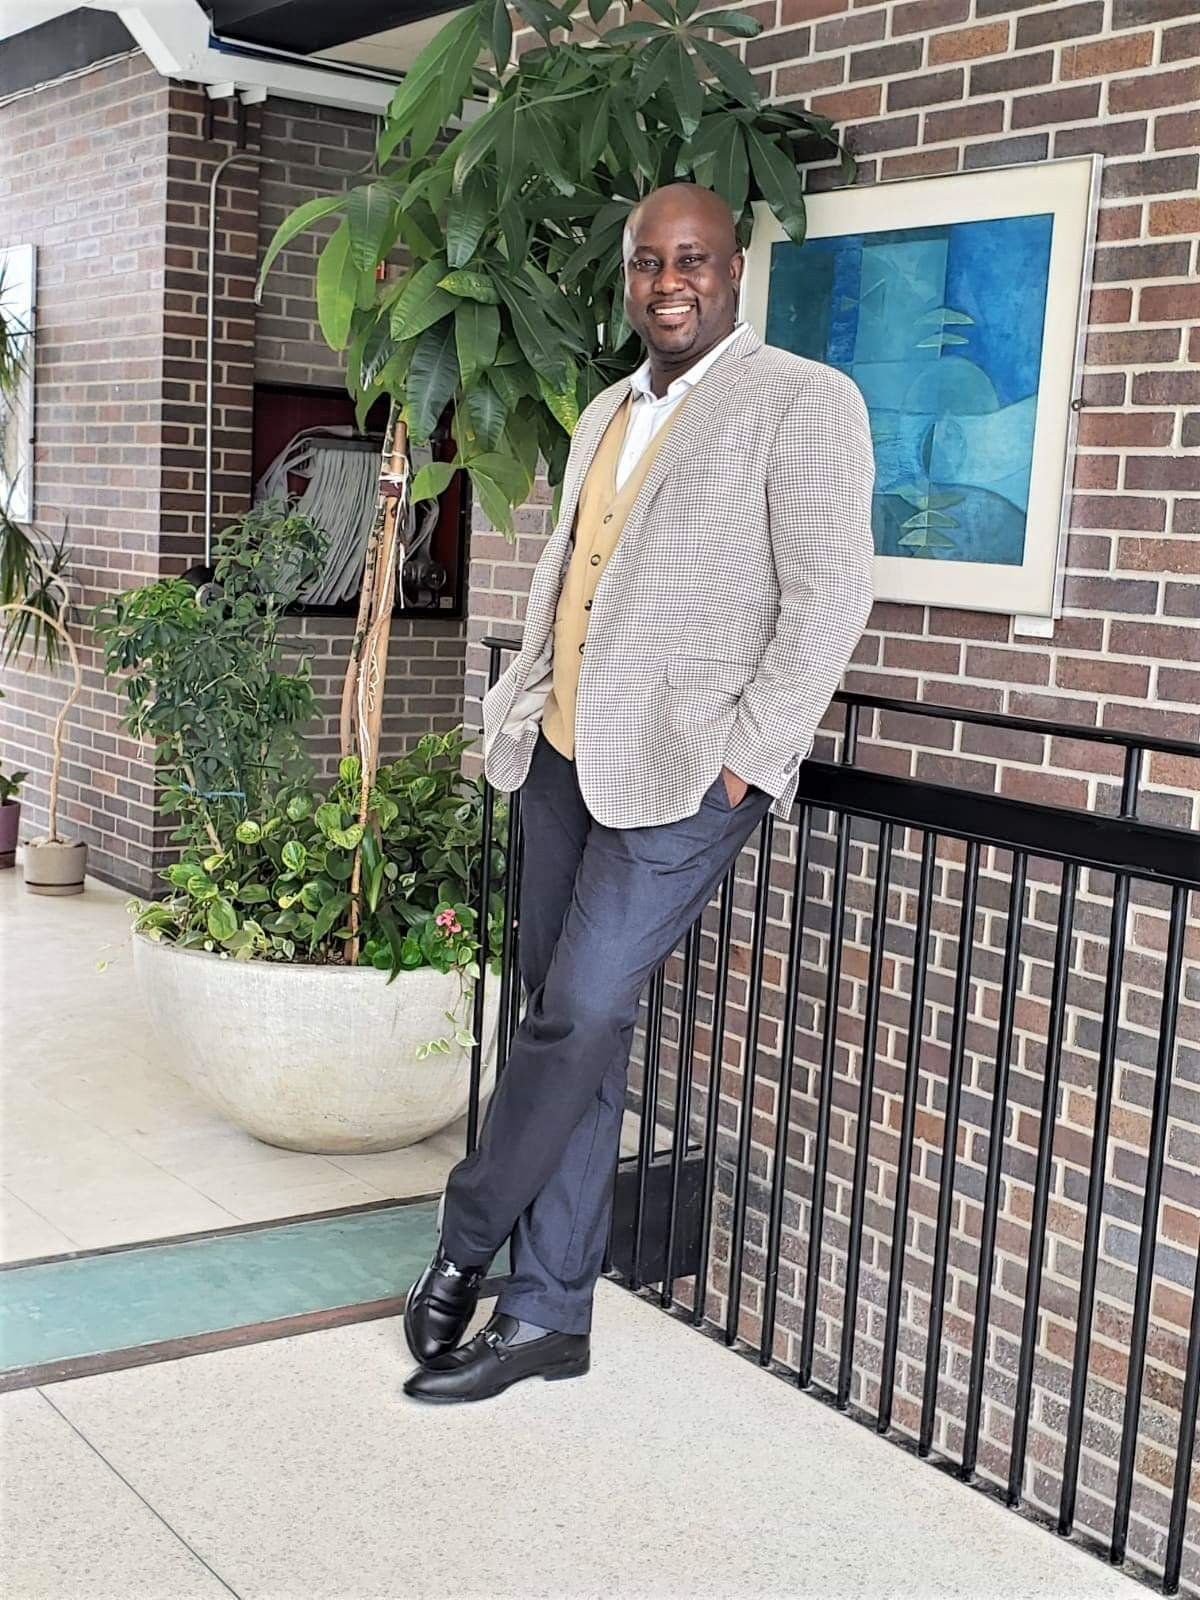 Pictures of professor Pius Adesanmi, the only Nigerian on board the Ethiopian Plane that crashed killing all 157 passengers 3